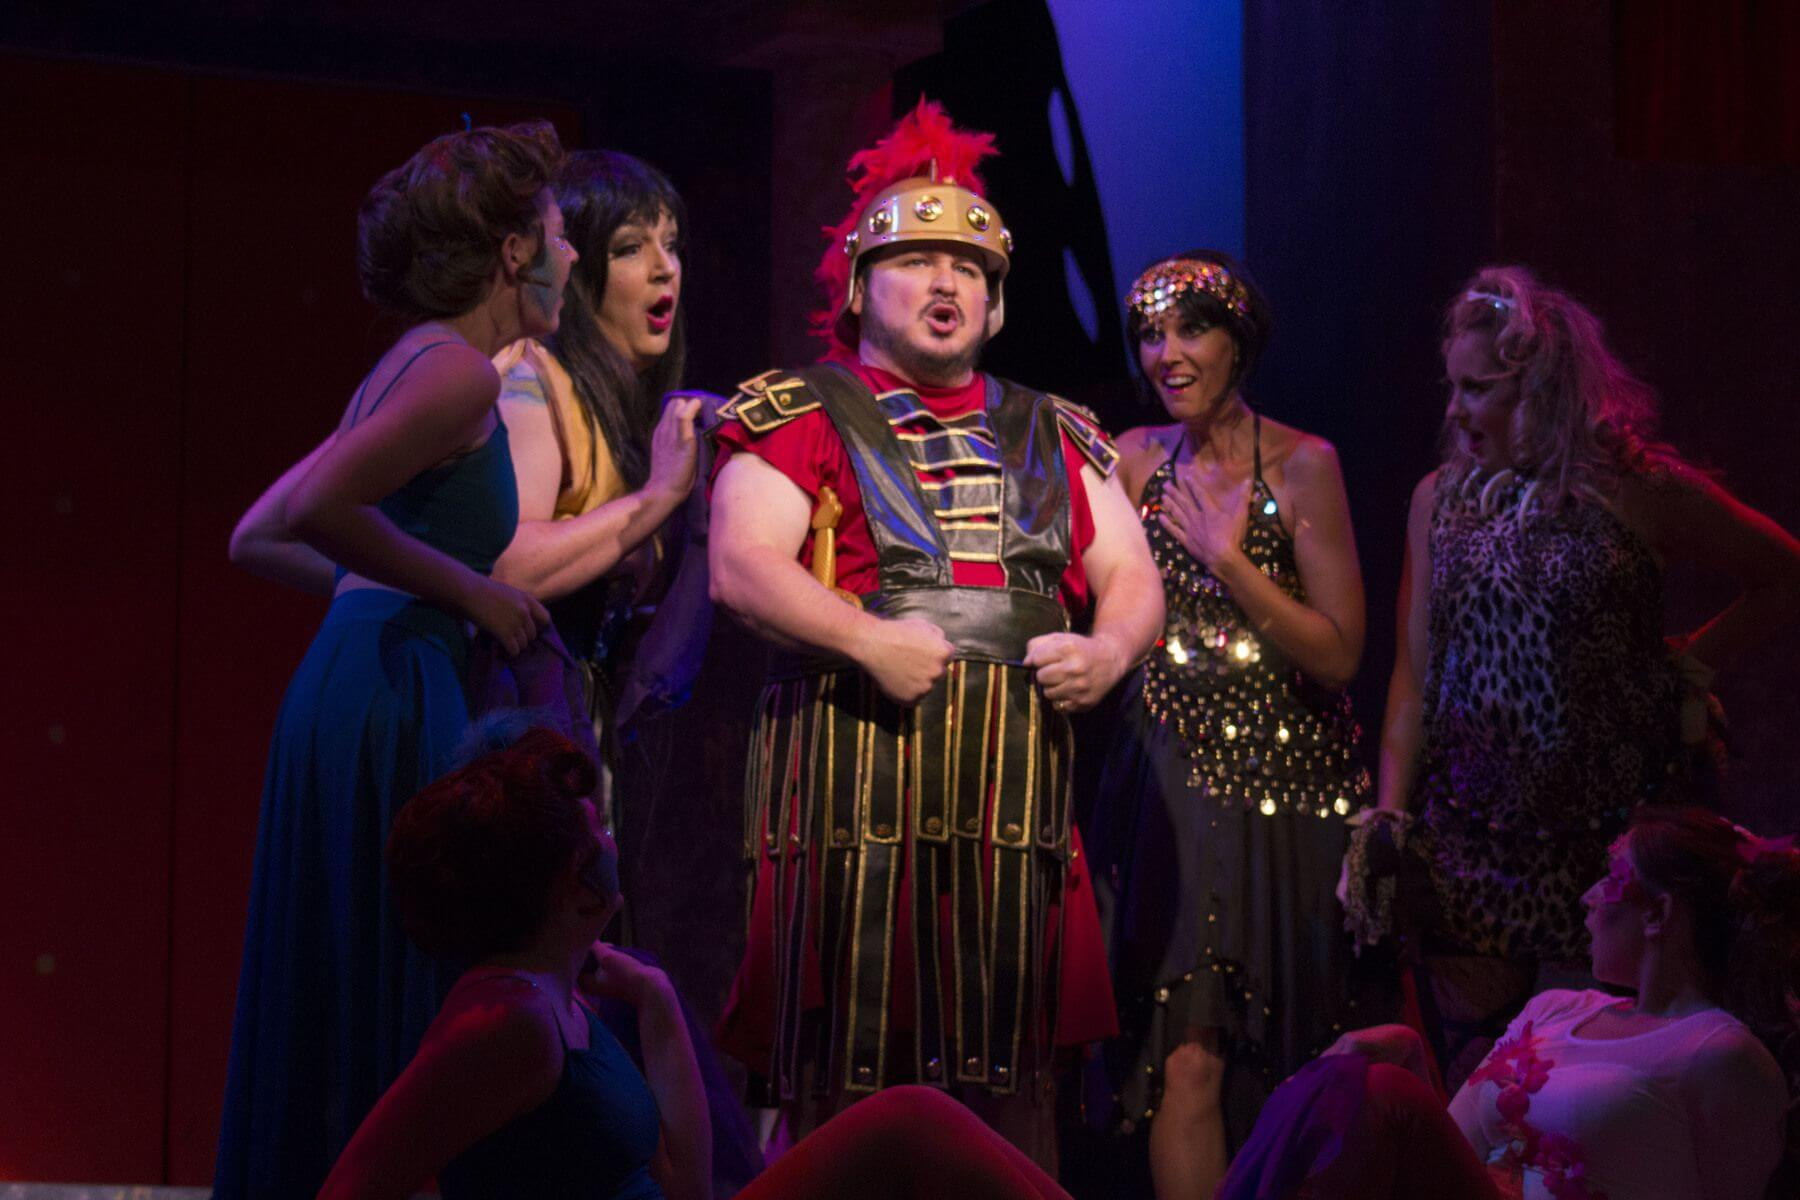 A soldier hams it up in A Funny Thing Happened on the Way to the Forum. Image: Harrell Performing Arts Theatre